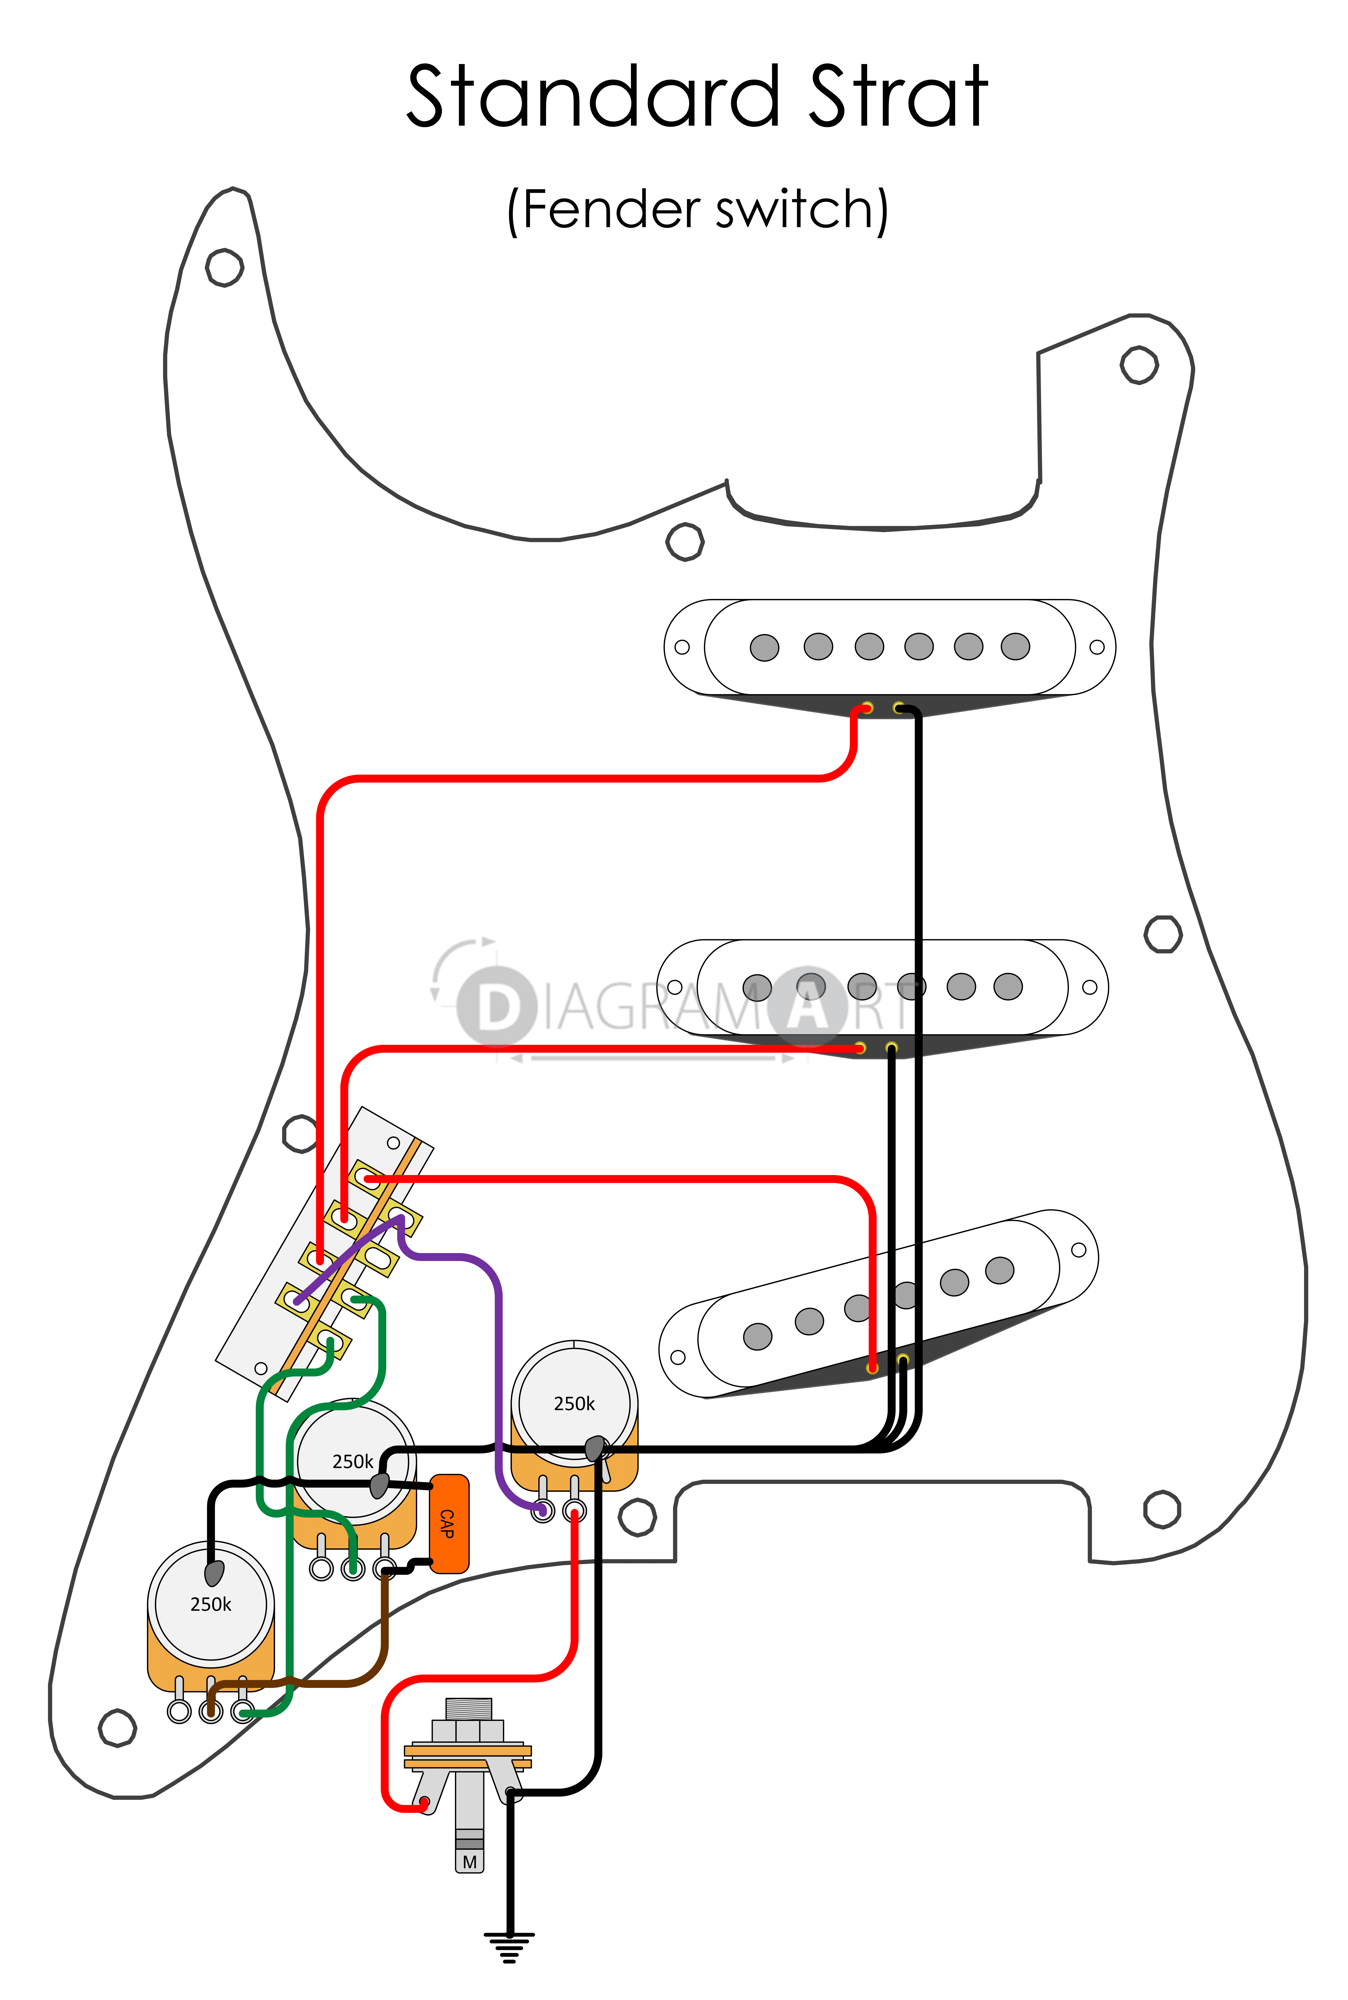 Electric Guitar Wiring: Standard Strat (Fender Switch) [Electric ...